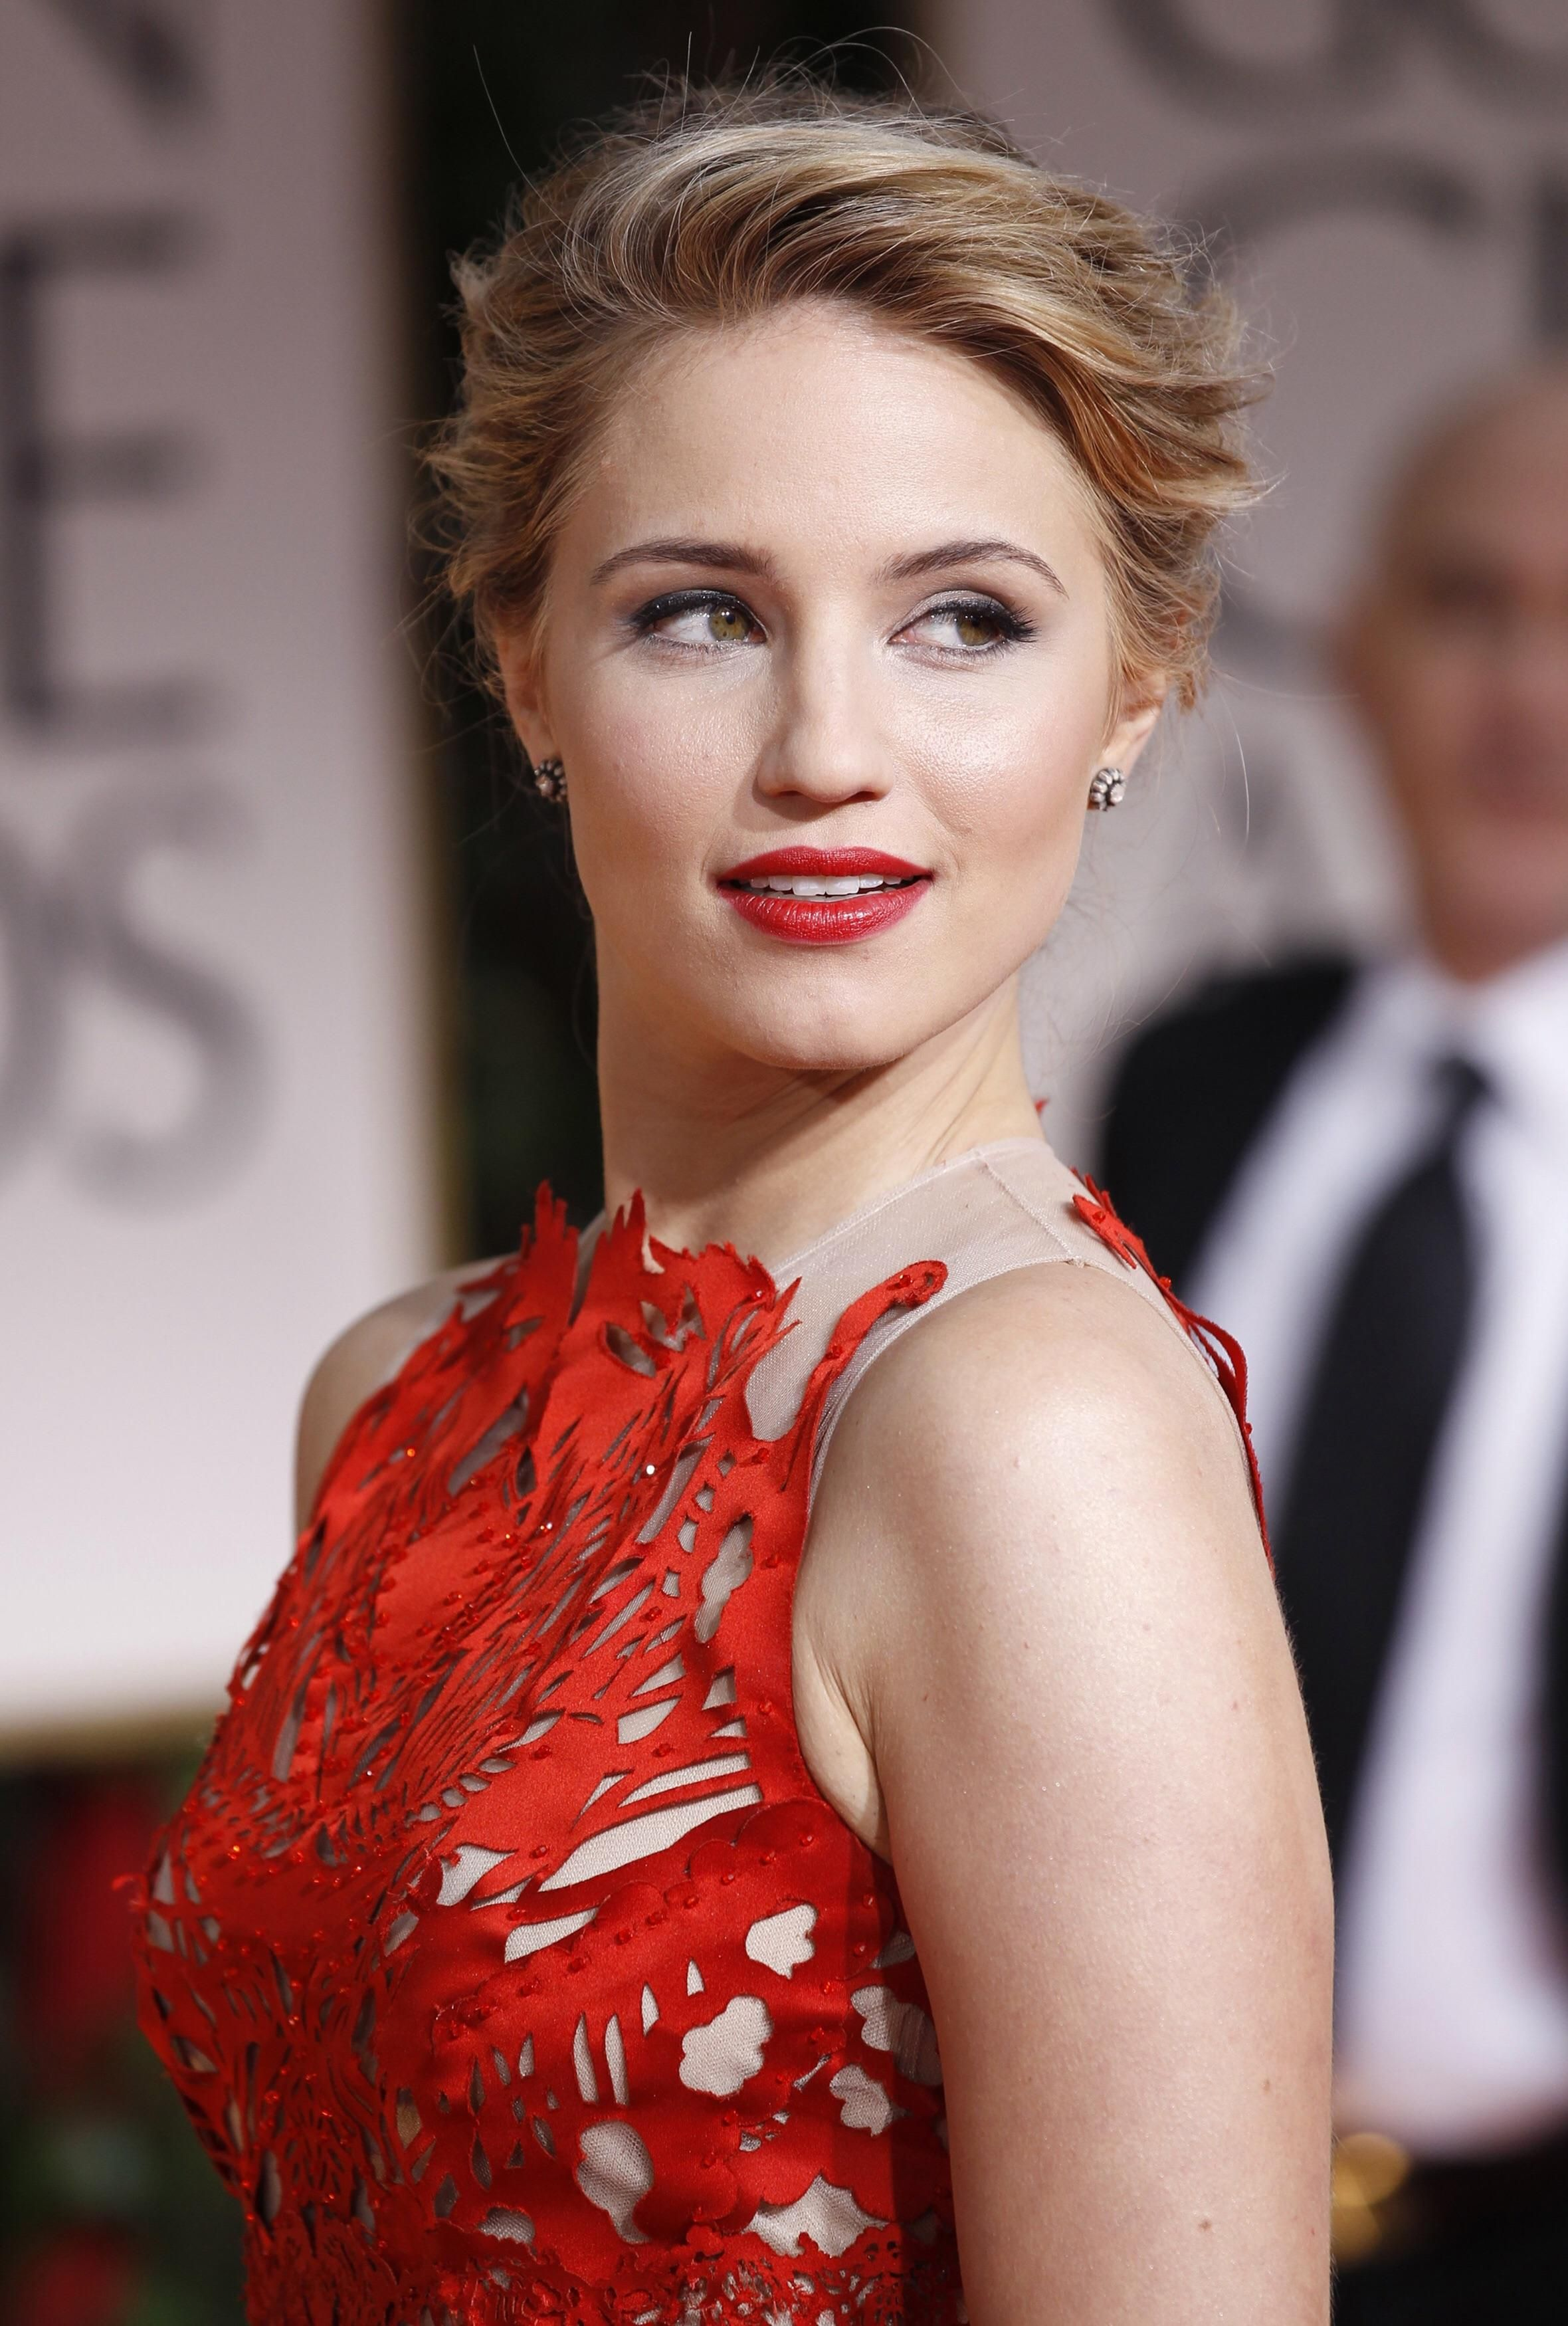 Celebrites Dianna Agron nude (37 photos), Topless, Hot, Twitter, cleavage 2018